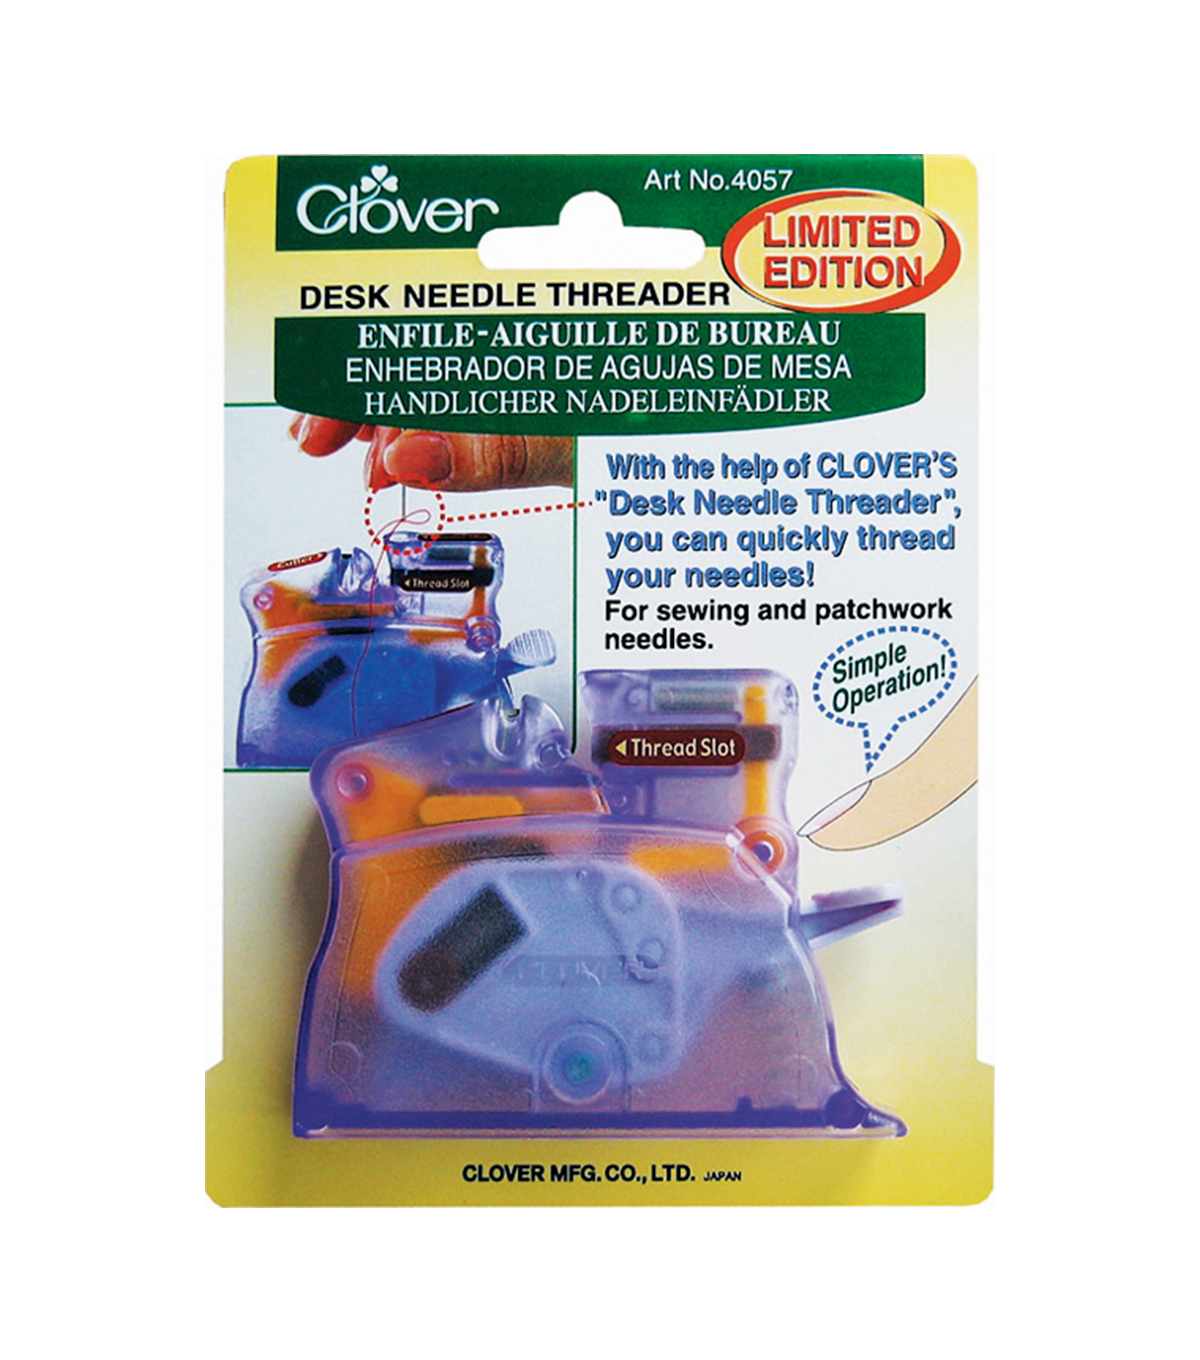 Desk Needle Threaders Ltd Pnk/Gr/Pur